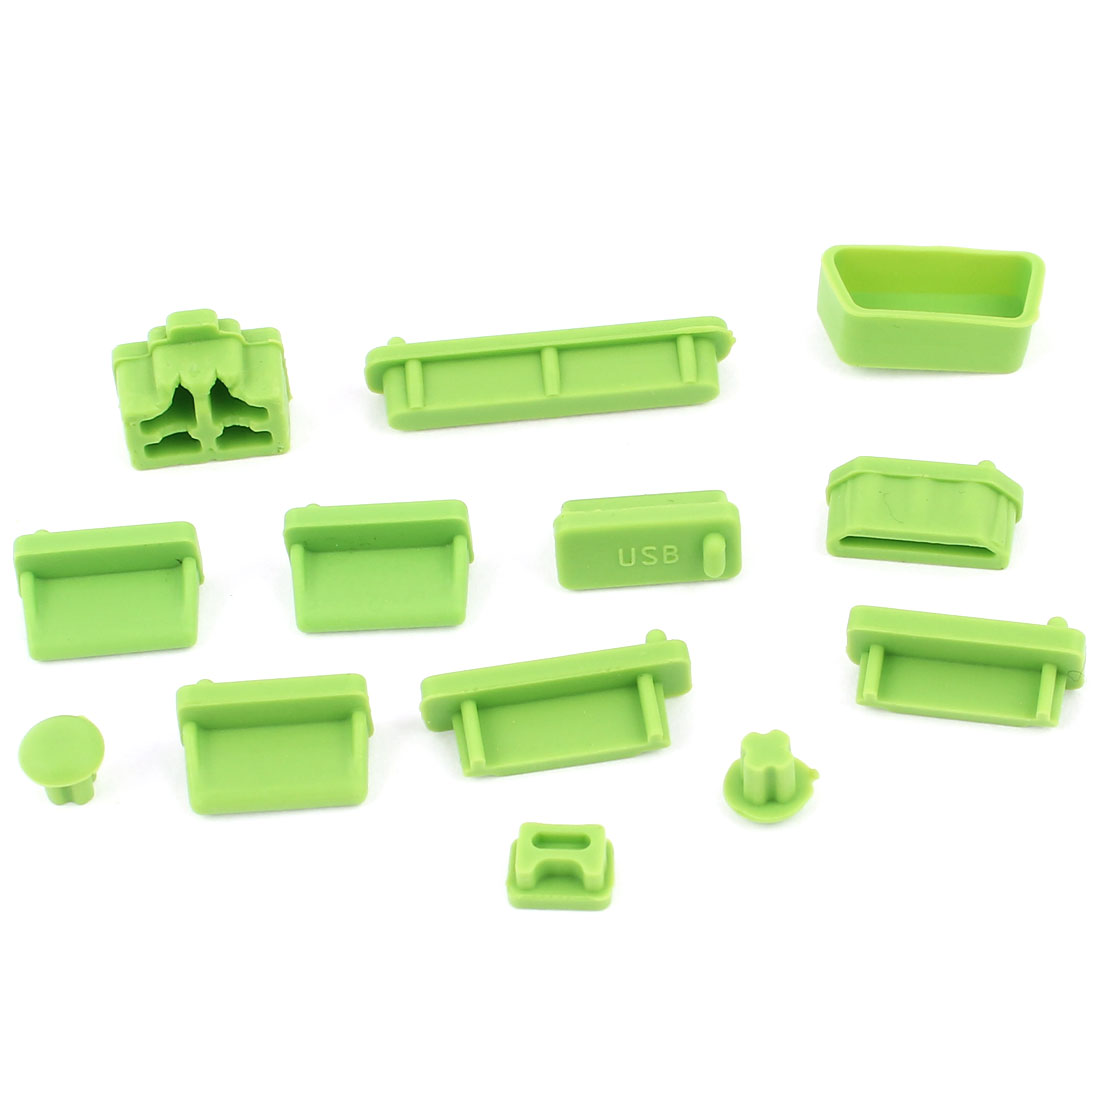 13pcs Green Silicone Anti-Dust Connector Stopper Port Cover for Notebook Laptop